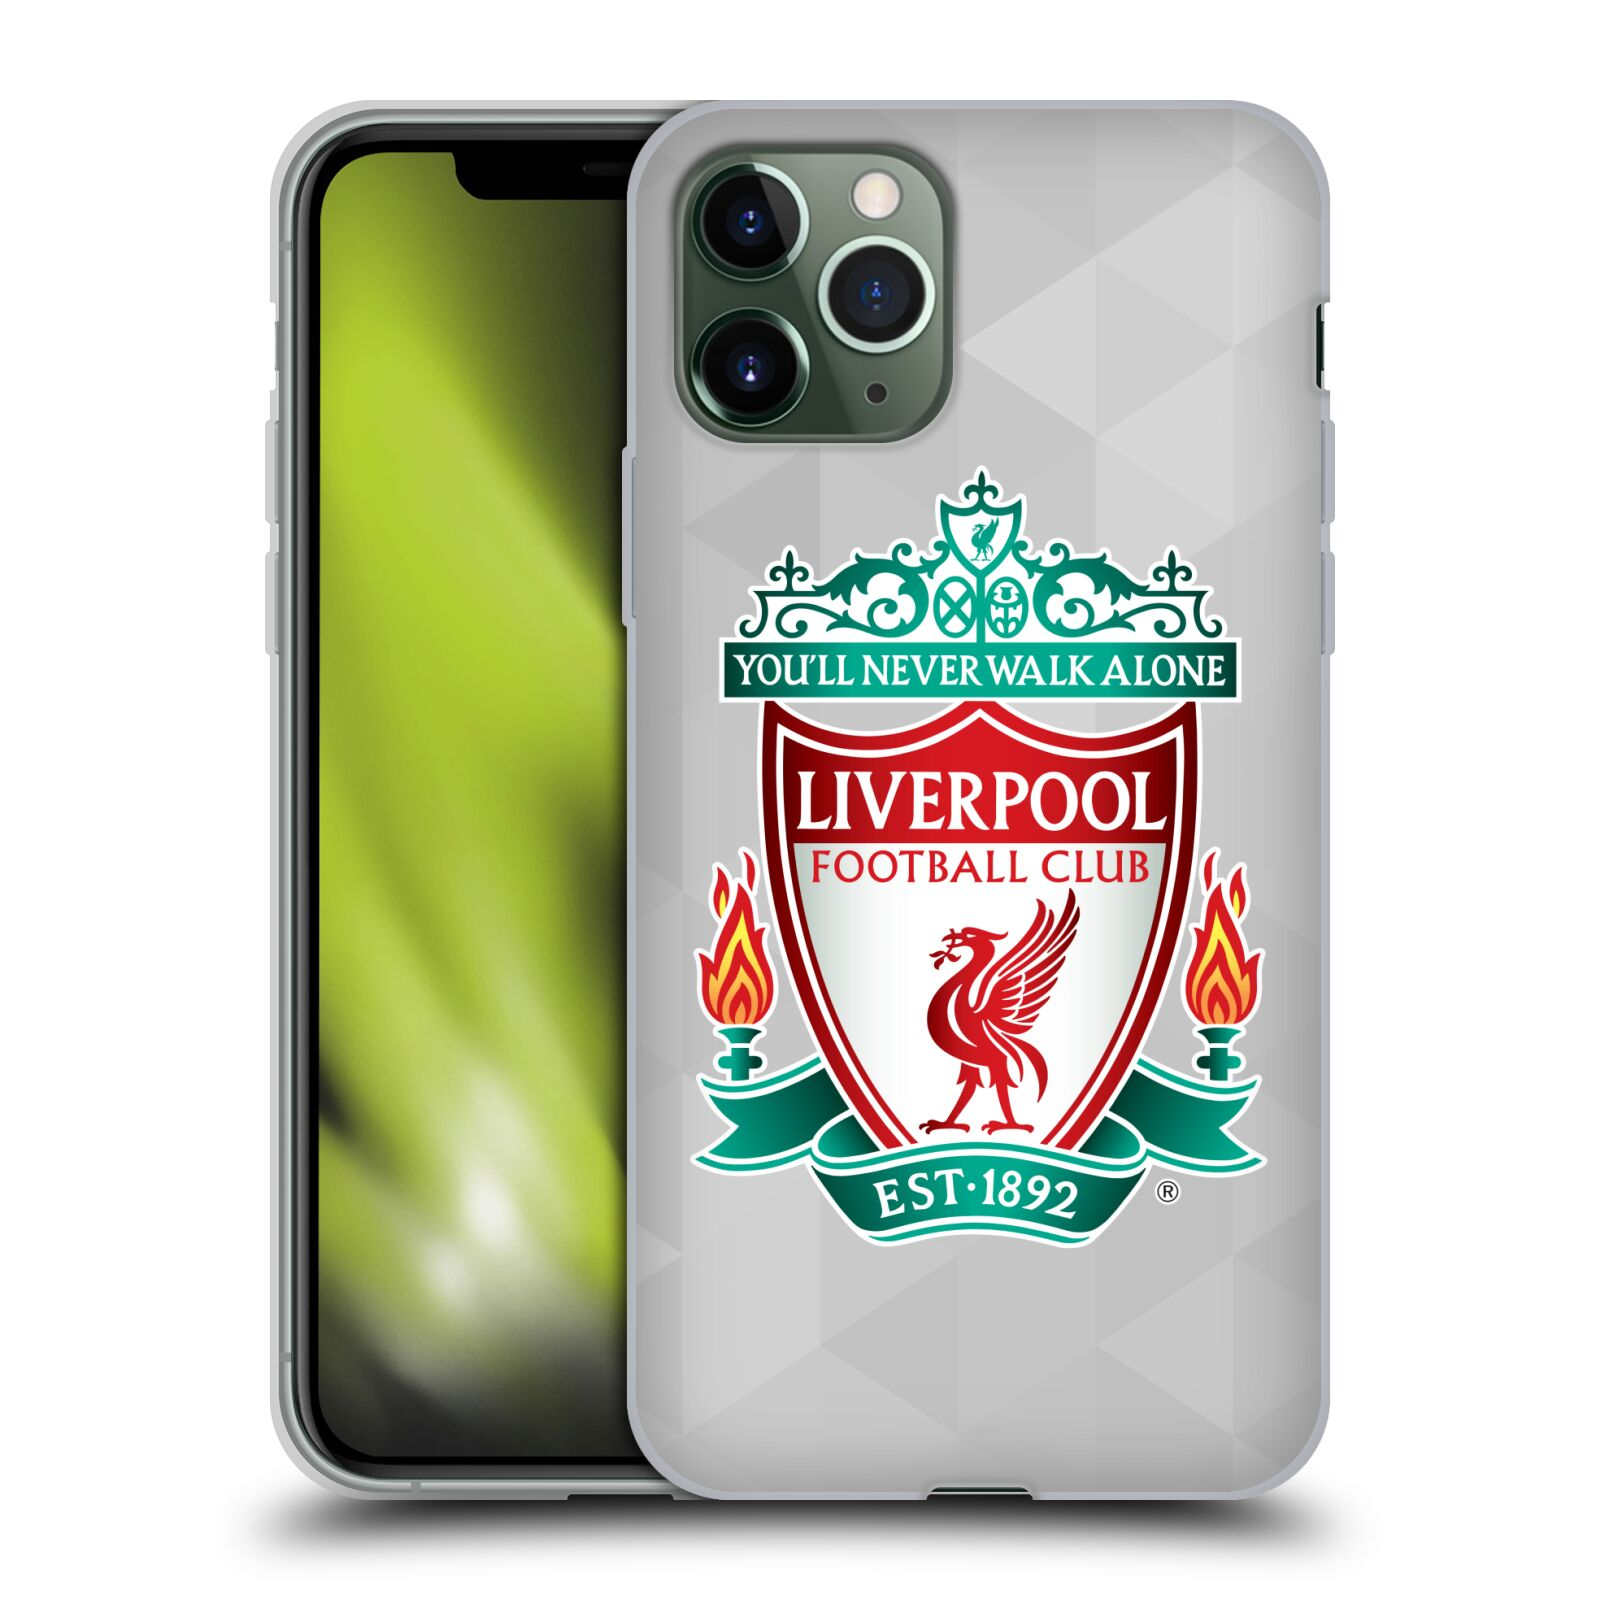 epico kryt iphone 7 | Silikonové pouzdro na mobil Apple iPhone 11 Pro - Head Case - ZNAK LIVERPOOL FC OFFICIAL GEOMETRIC WHITE